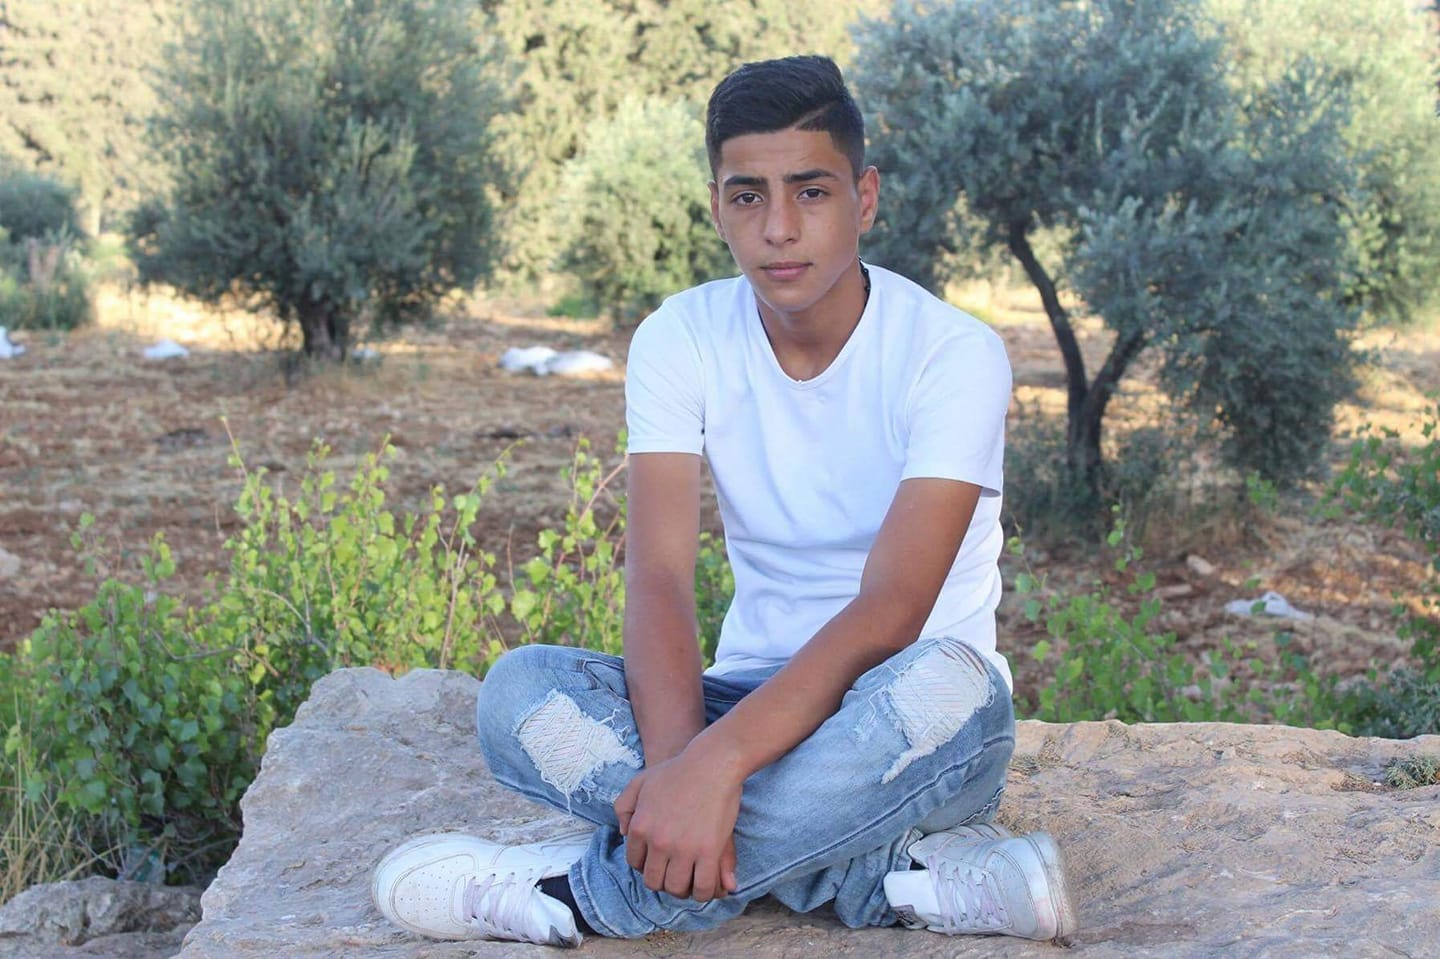 In Palestine, a Young Man's Education and Life Are Cut Short by Israeli Bullets